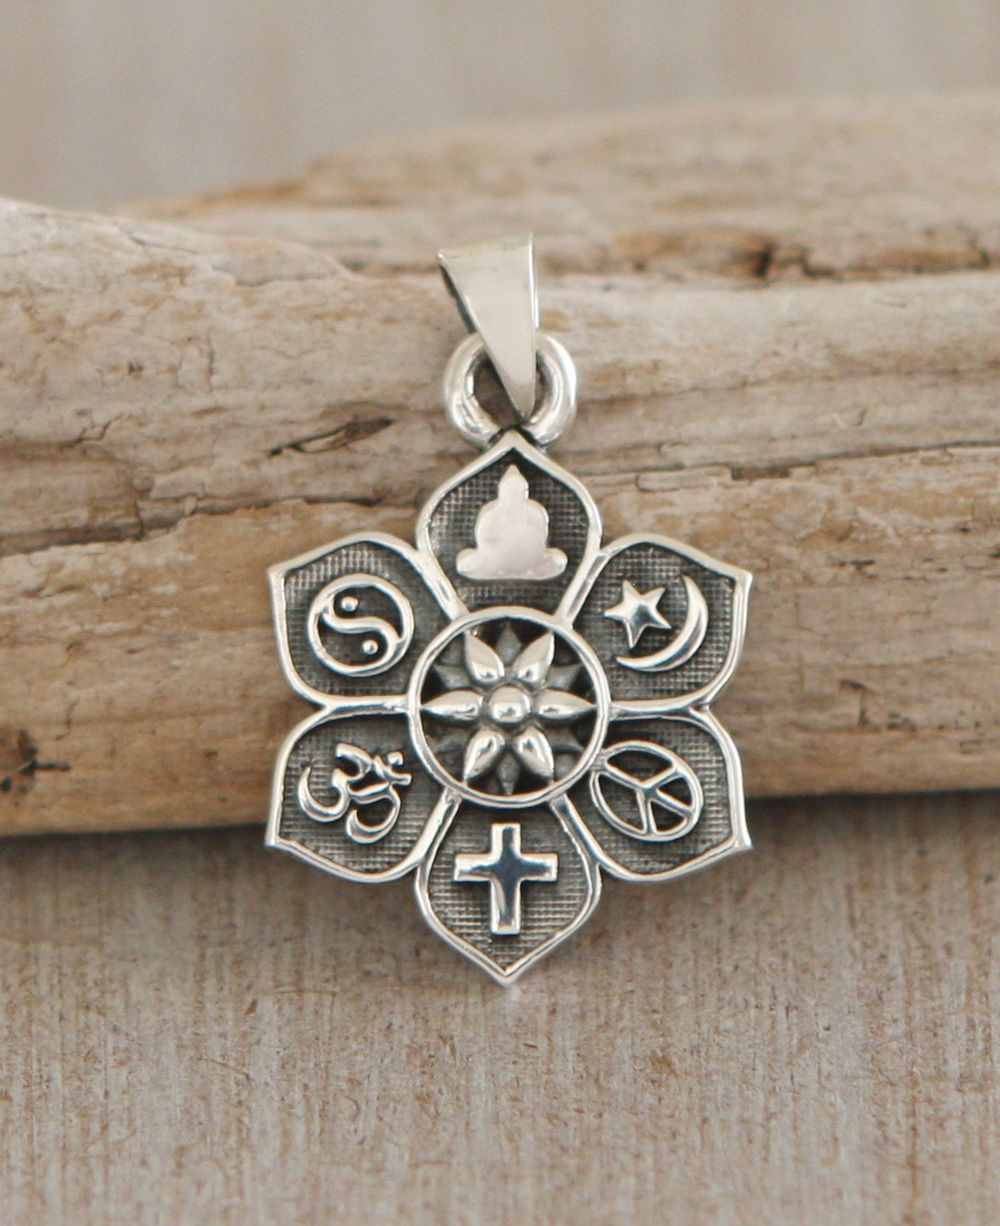 Sterling silver coexist harmony pendant lotus design lotus detailed sterling silver lotus pendant shows relief symbols from the worlds major religions on its petals buycottarizona